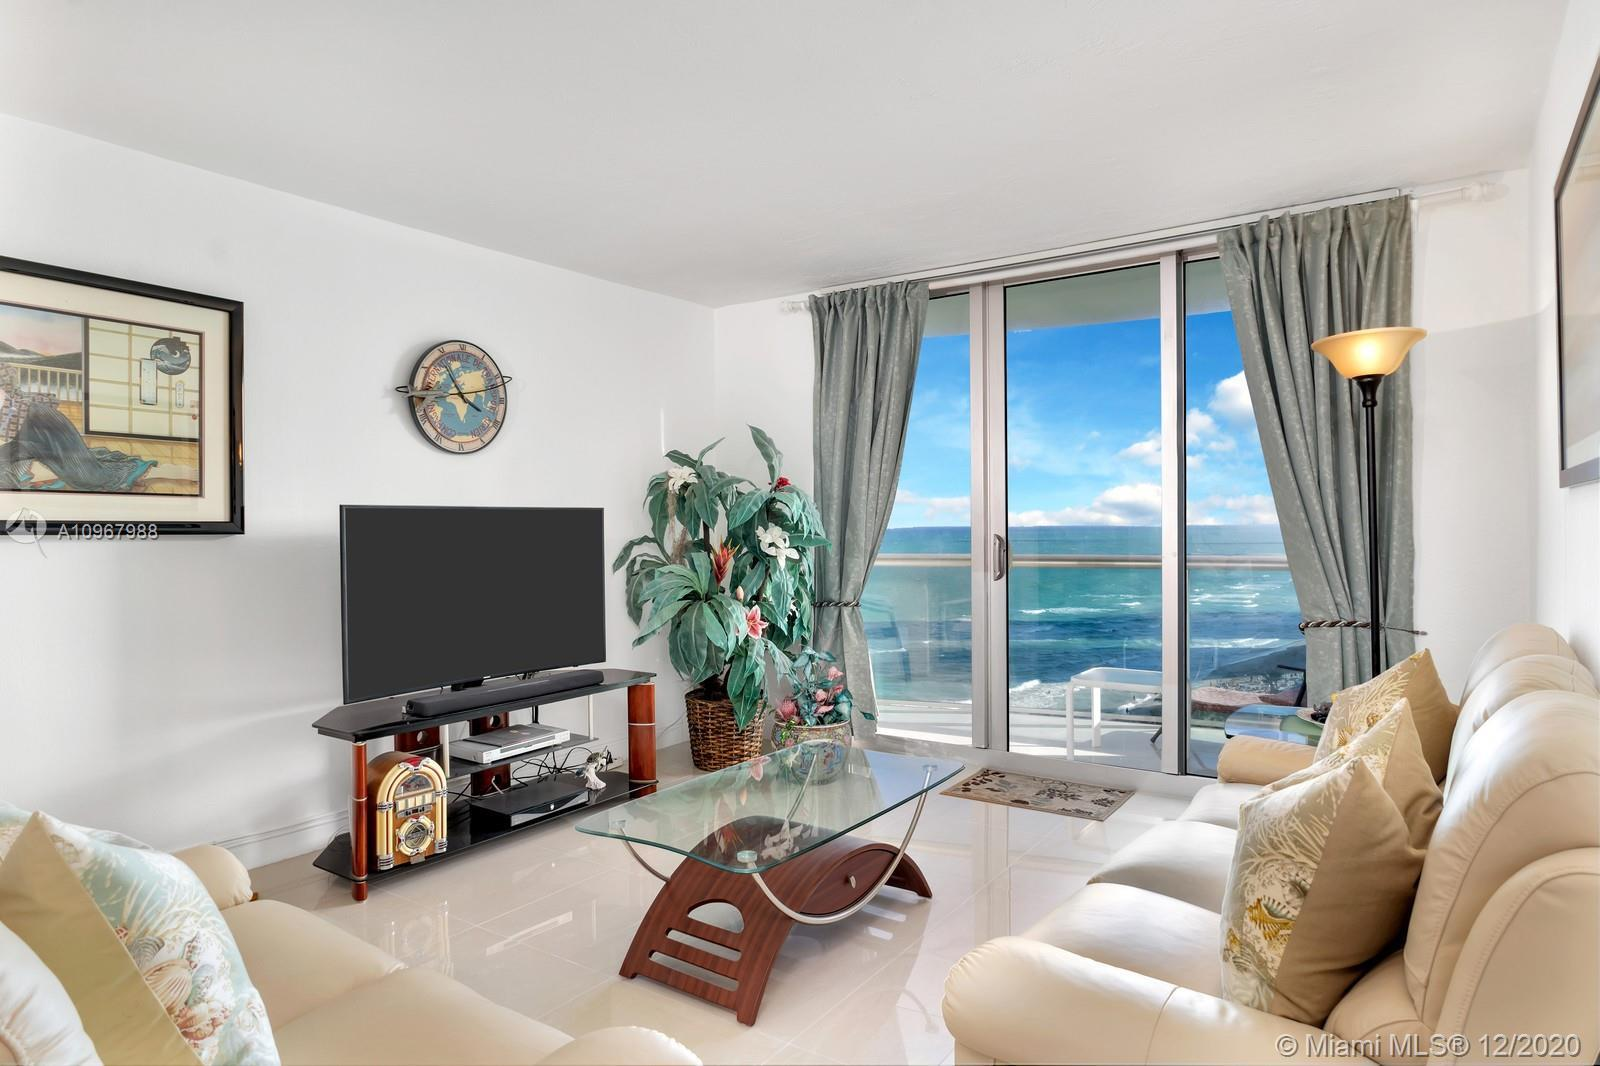 Magnificent direct ocean views, immaculate modern decor, popular Hollywood Beach location and an abu